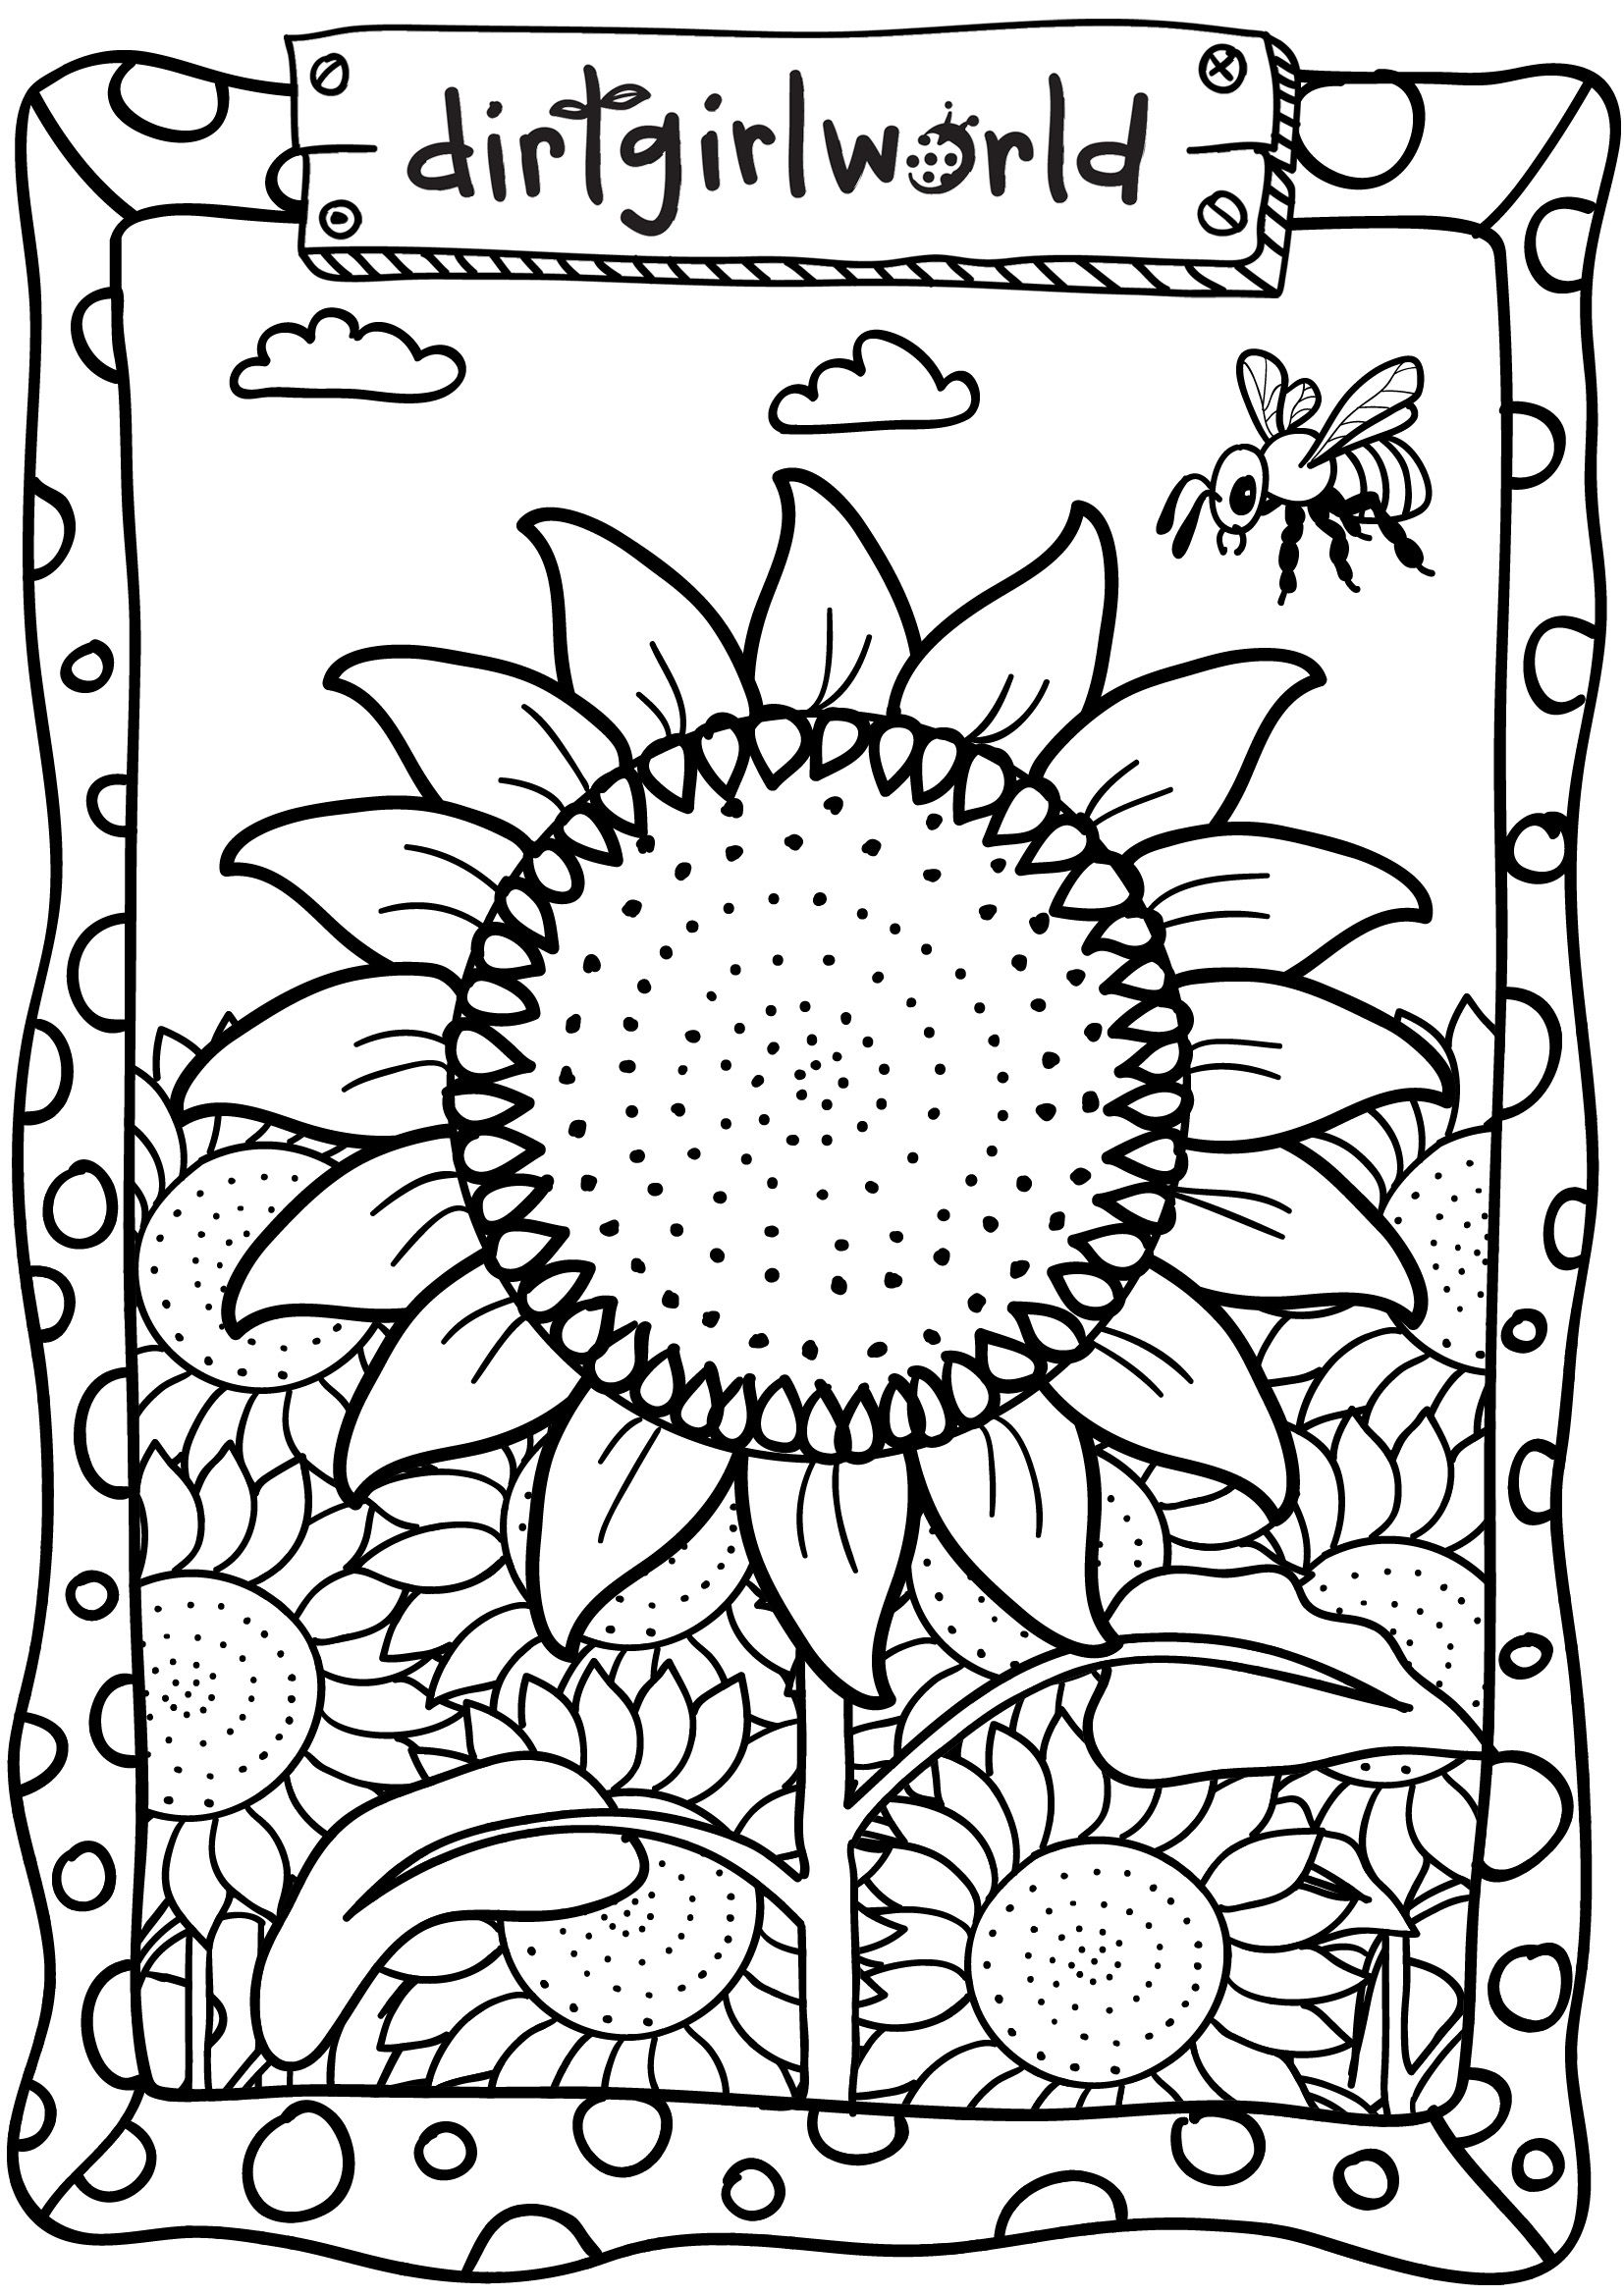 Complicolor Dirt Girl World Sunflower Colouring Page Printable Pages And Coloring Books For Grown Ups At Plicatedcoloring Flowers